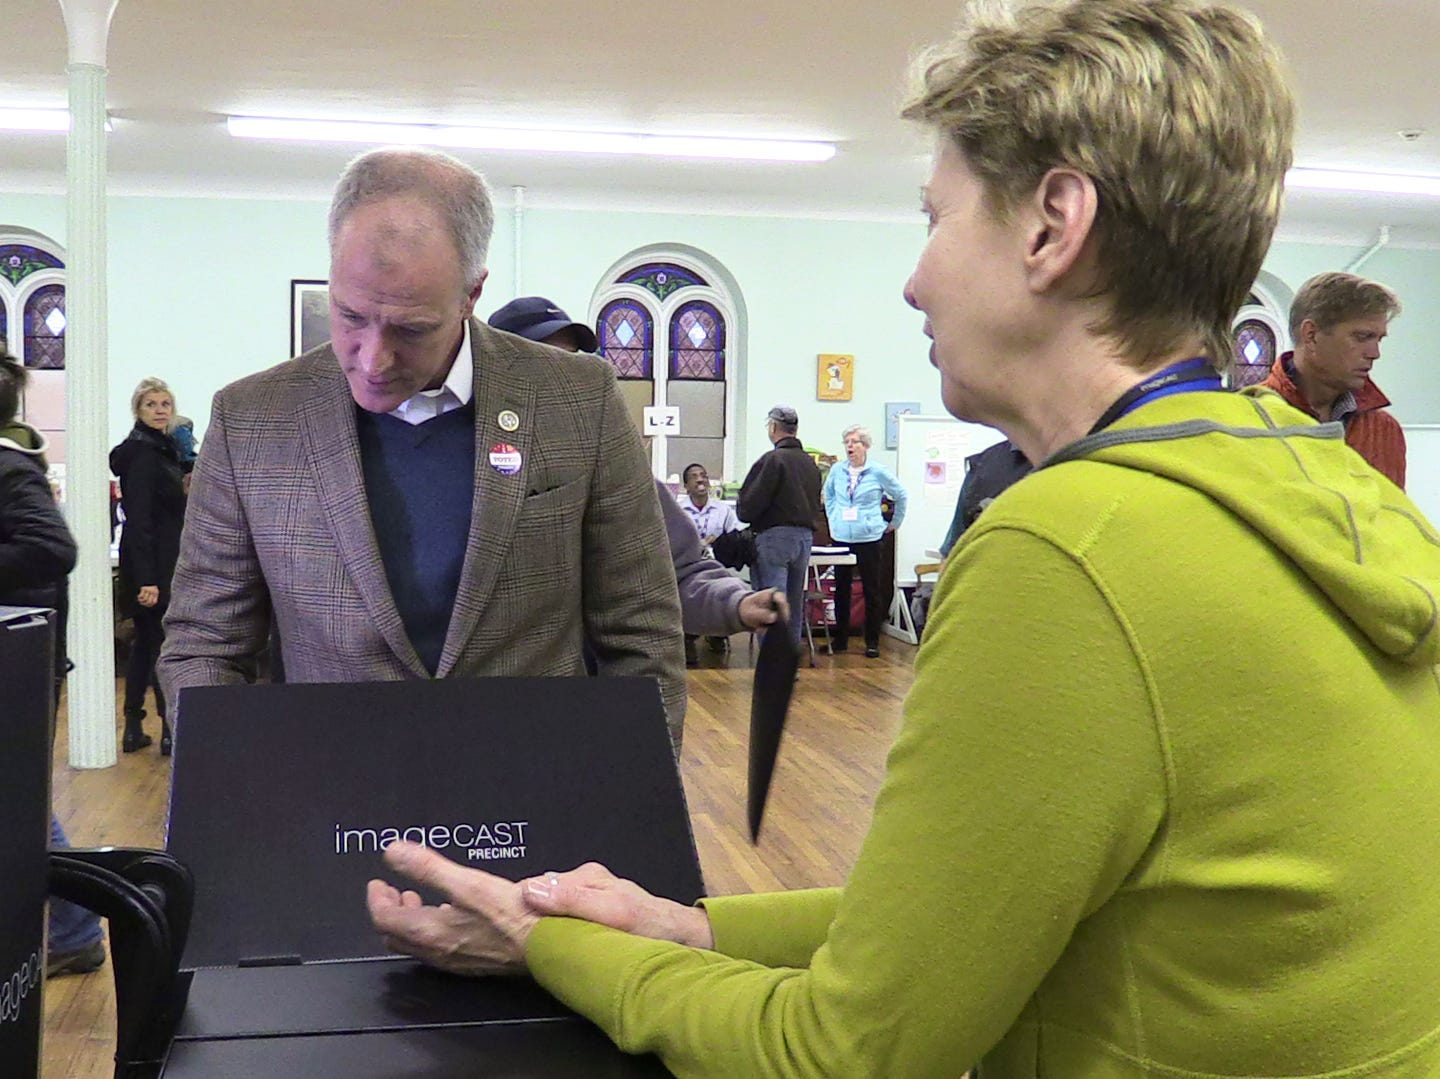 Congressman Sean Patrick Maloney casts his vote at the United Methodist Church polling station in Cold Spring on Nov. 6, 2018.